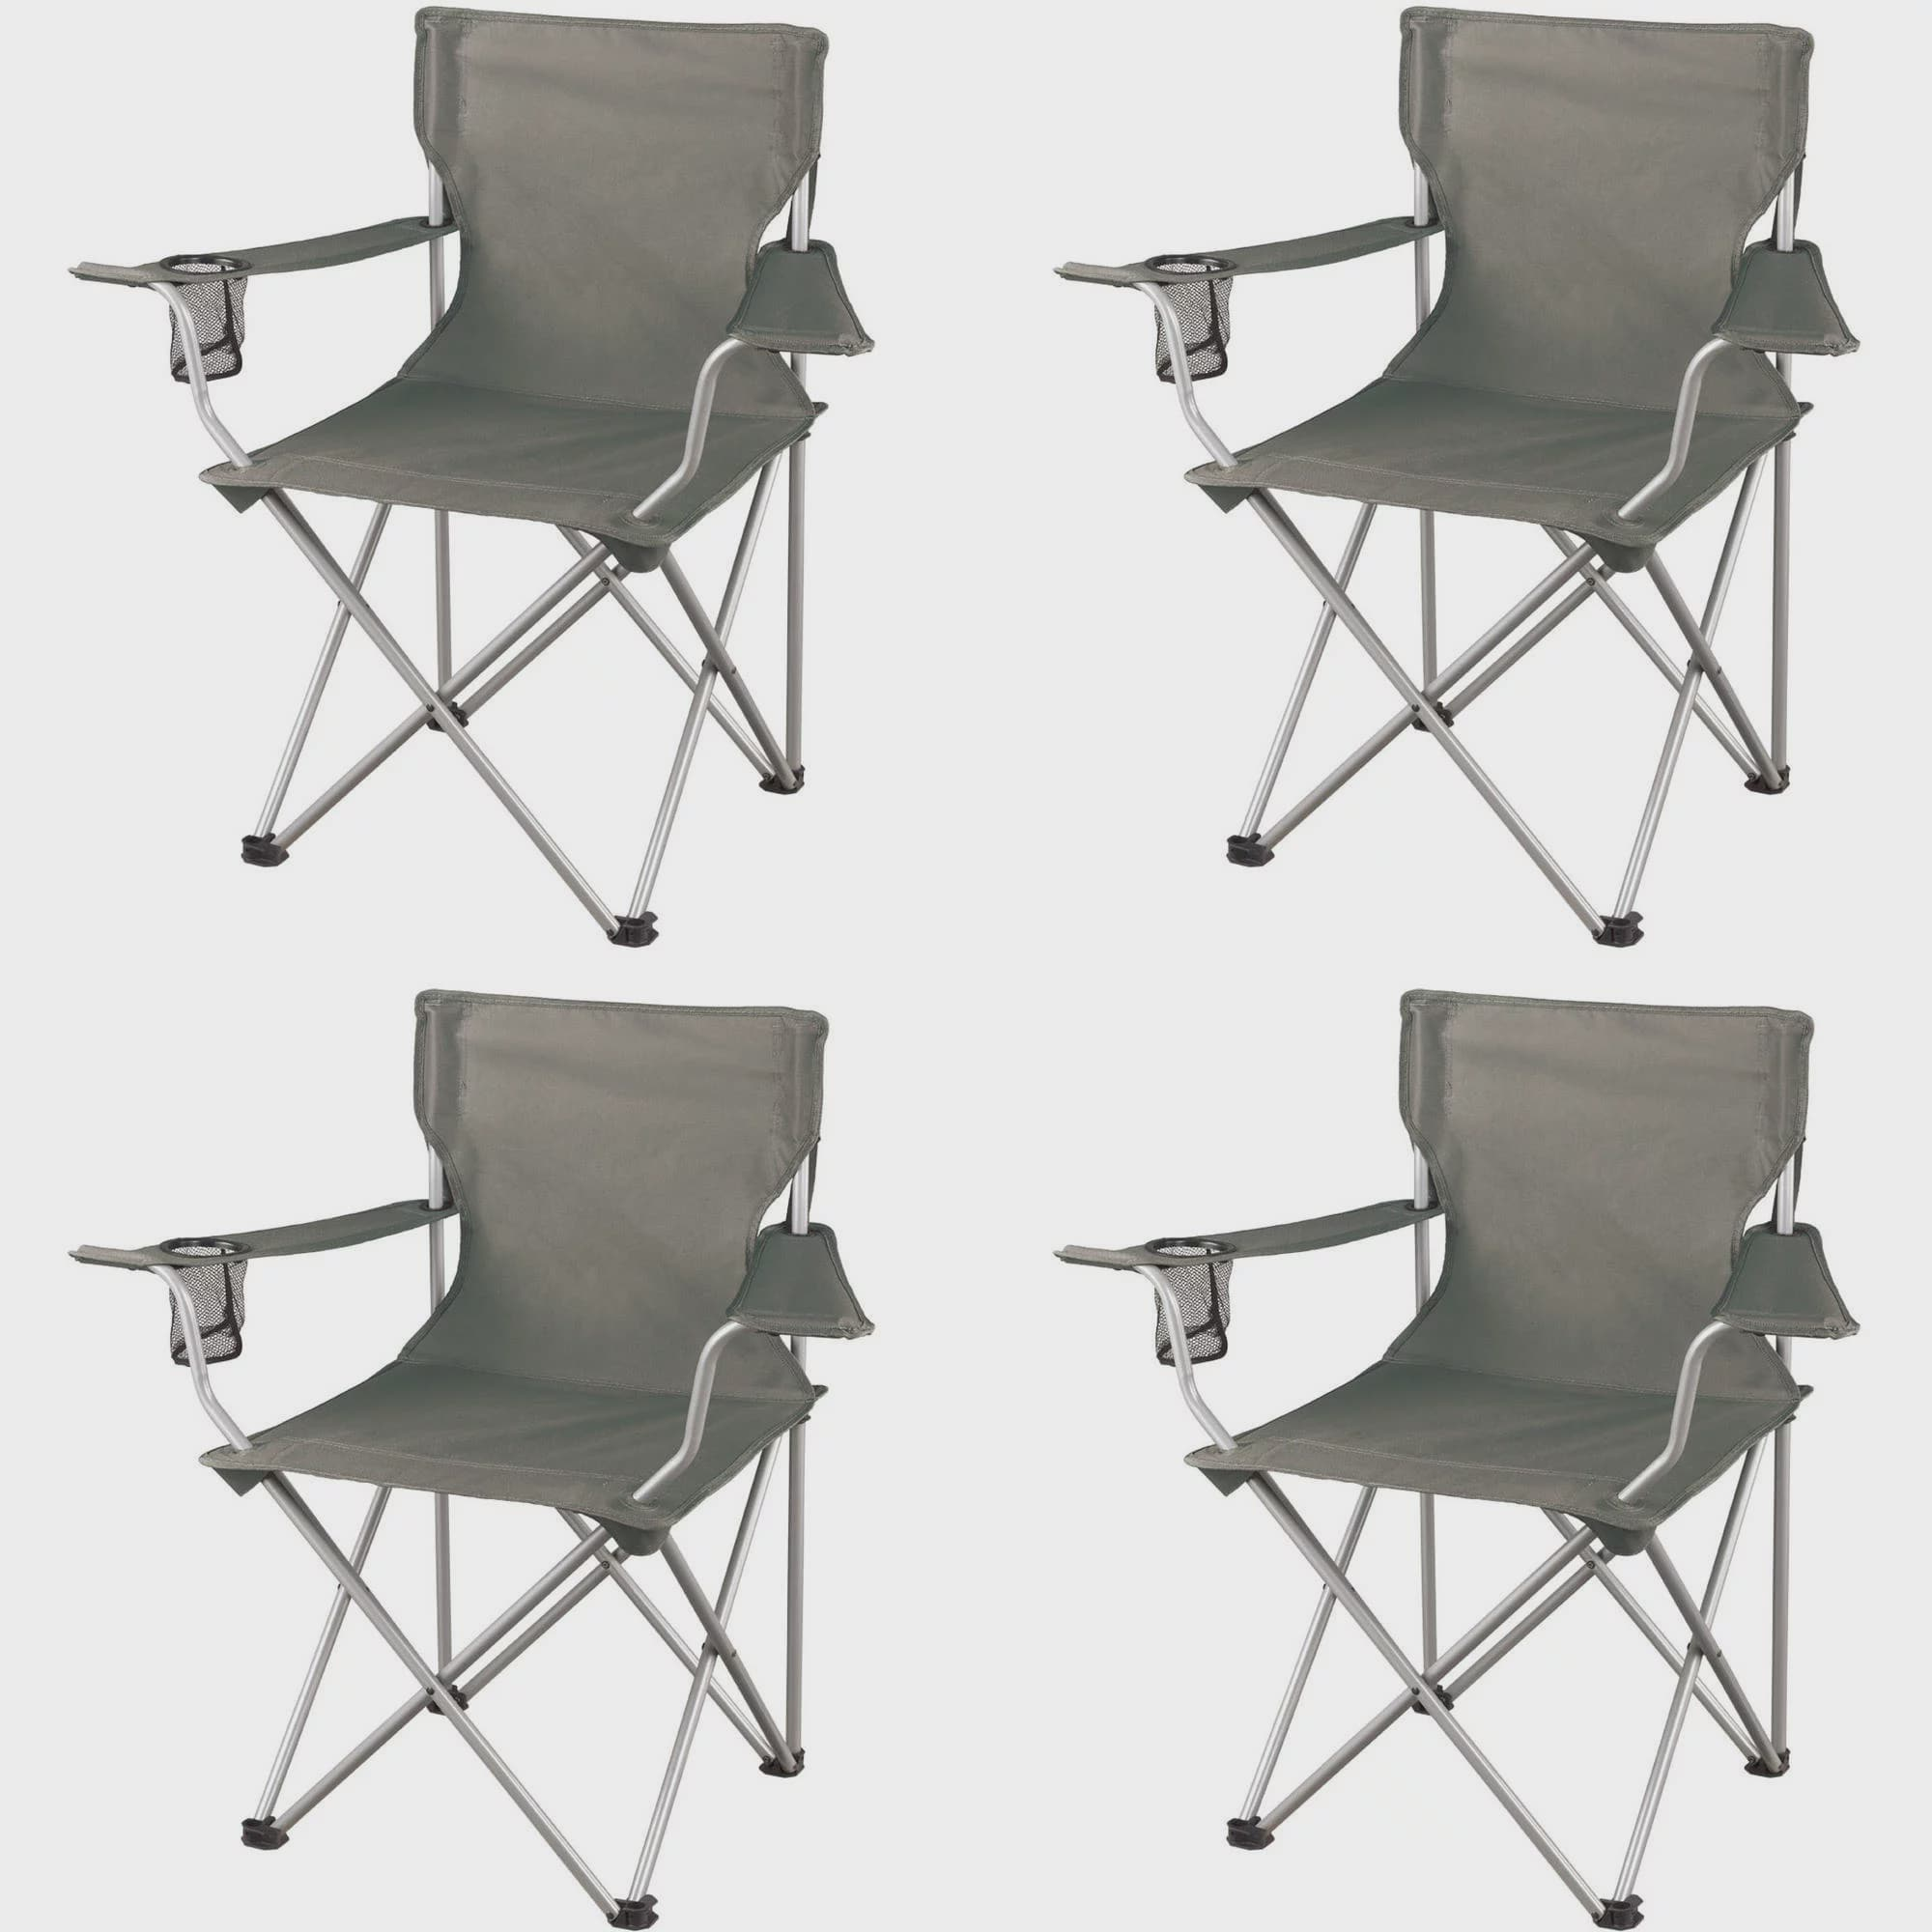 Ozark Trail Classic Folding Camp Chairs Set Of 4 Walmart Com